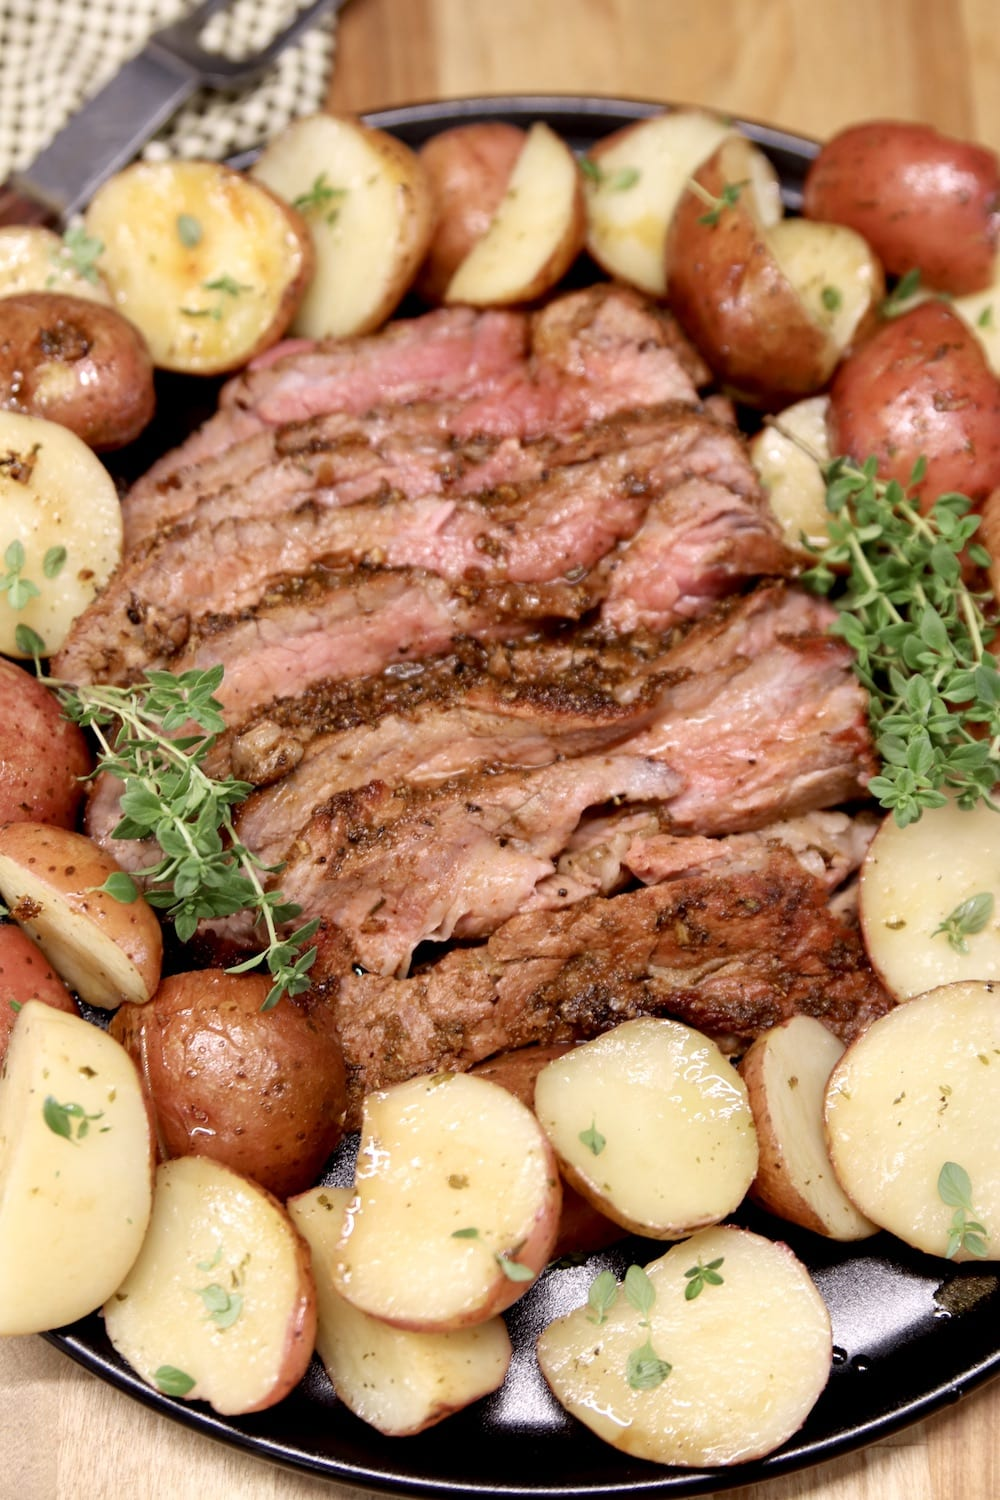 Grilled Tri-Tip sliced on a platter with baby potatoes, fresh thyme garnish